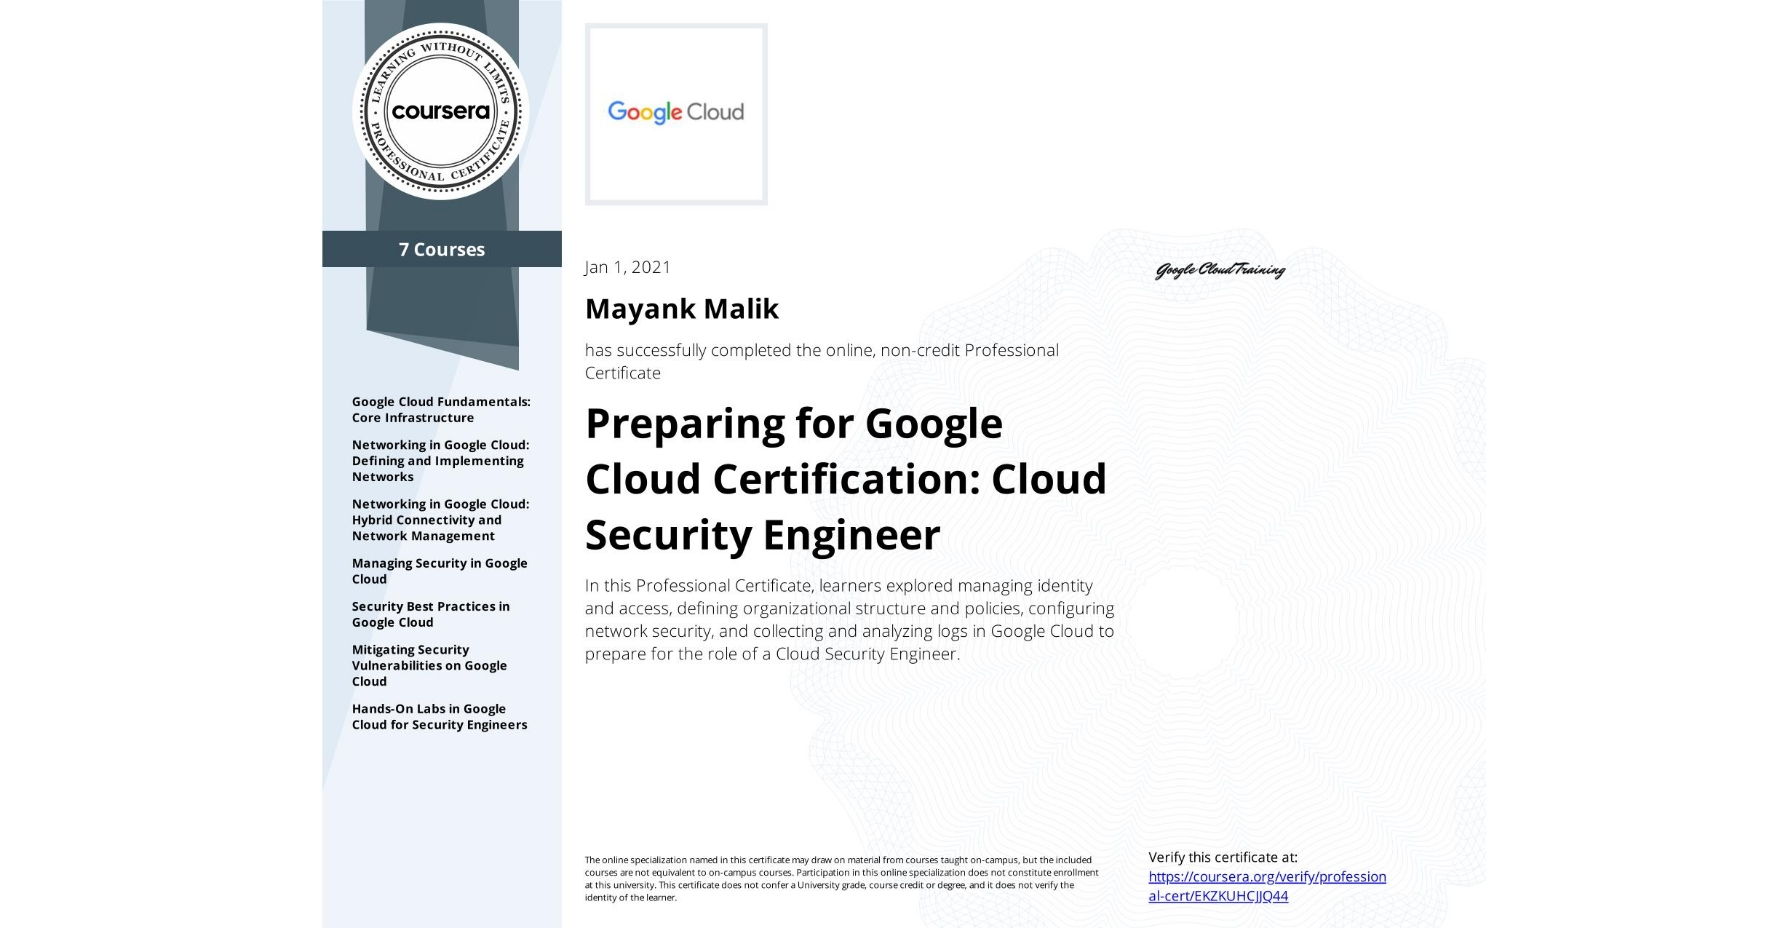 View certificate for Mayank Malik, Google Cloud Security, offered through Coursera. In this Professional Certificate, learners explored managing identity and access, defining organizational structure and policies, configuring network security, and collecting and analyzing logs in Google Cloud to prepare for the role of a Cloud Security Engineer.